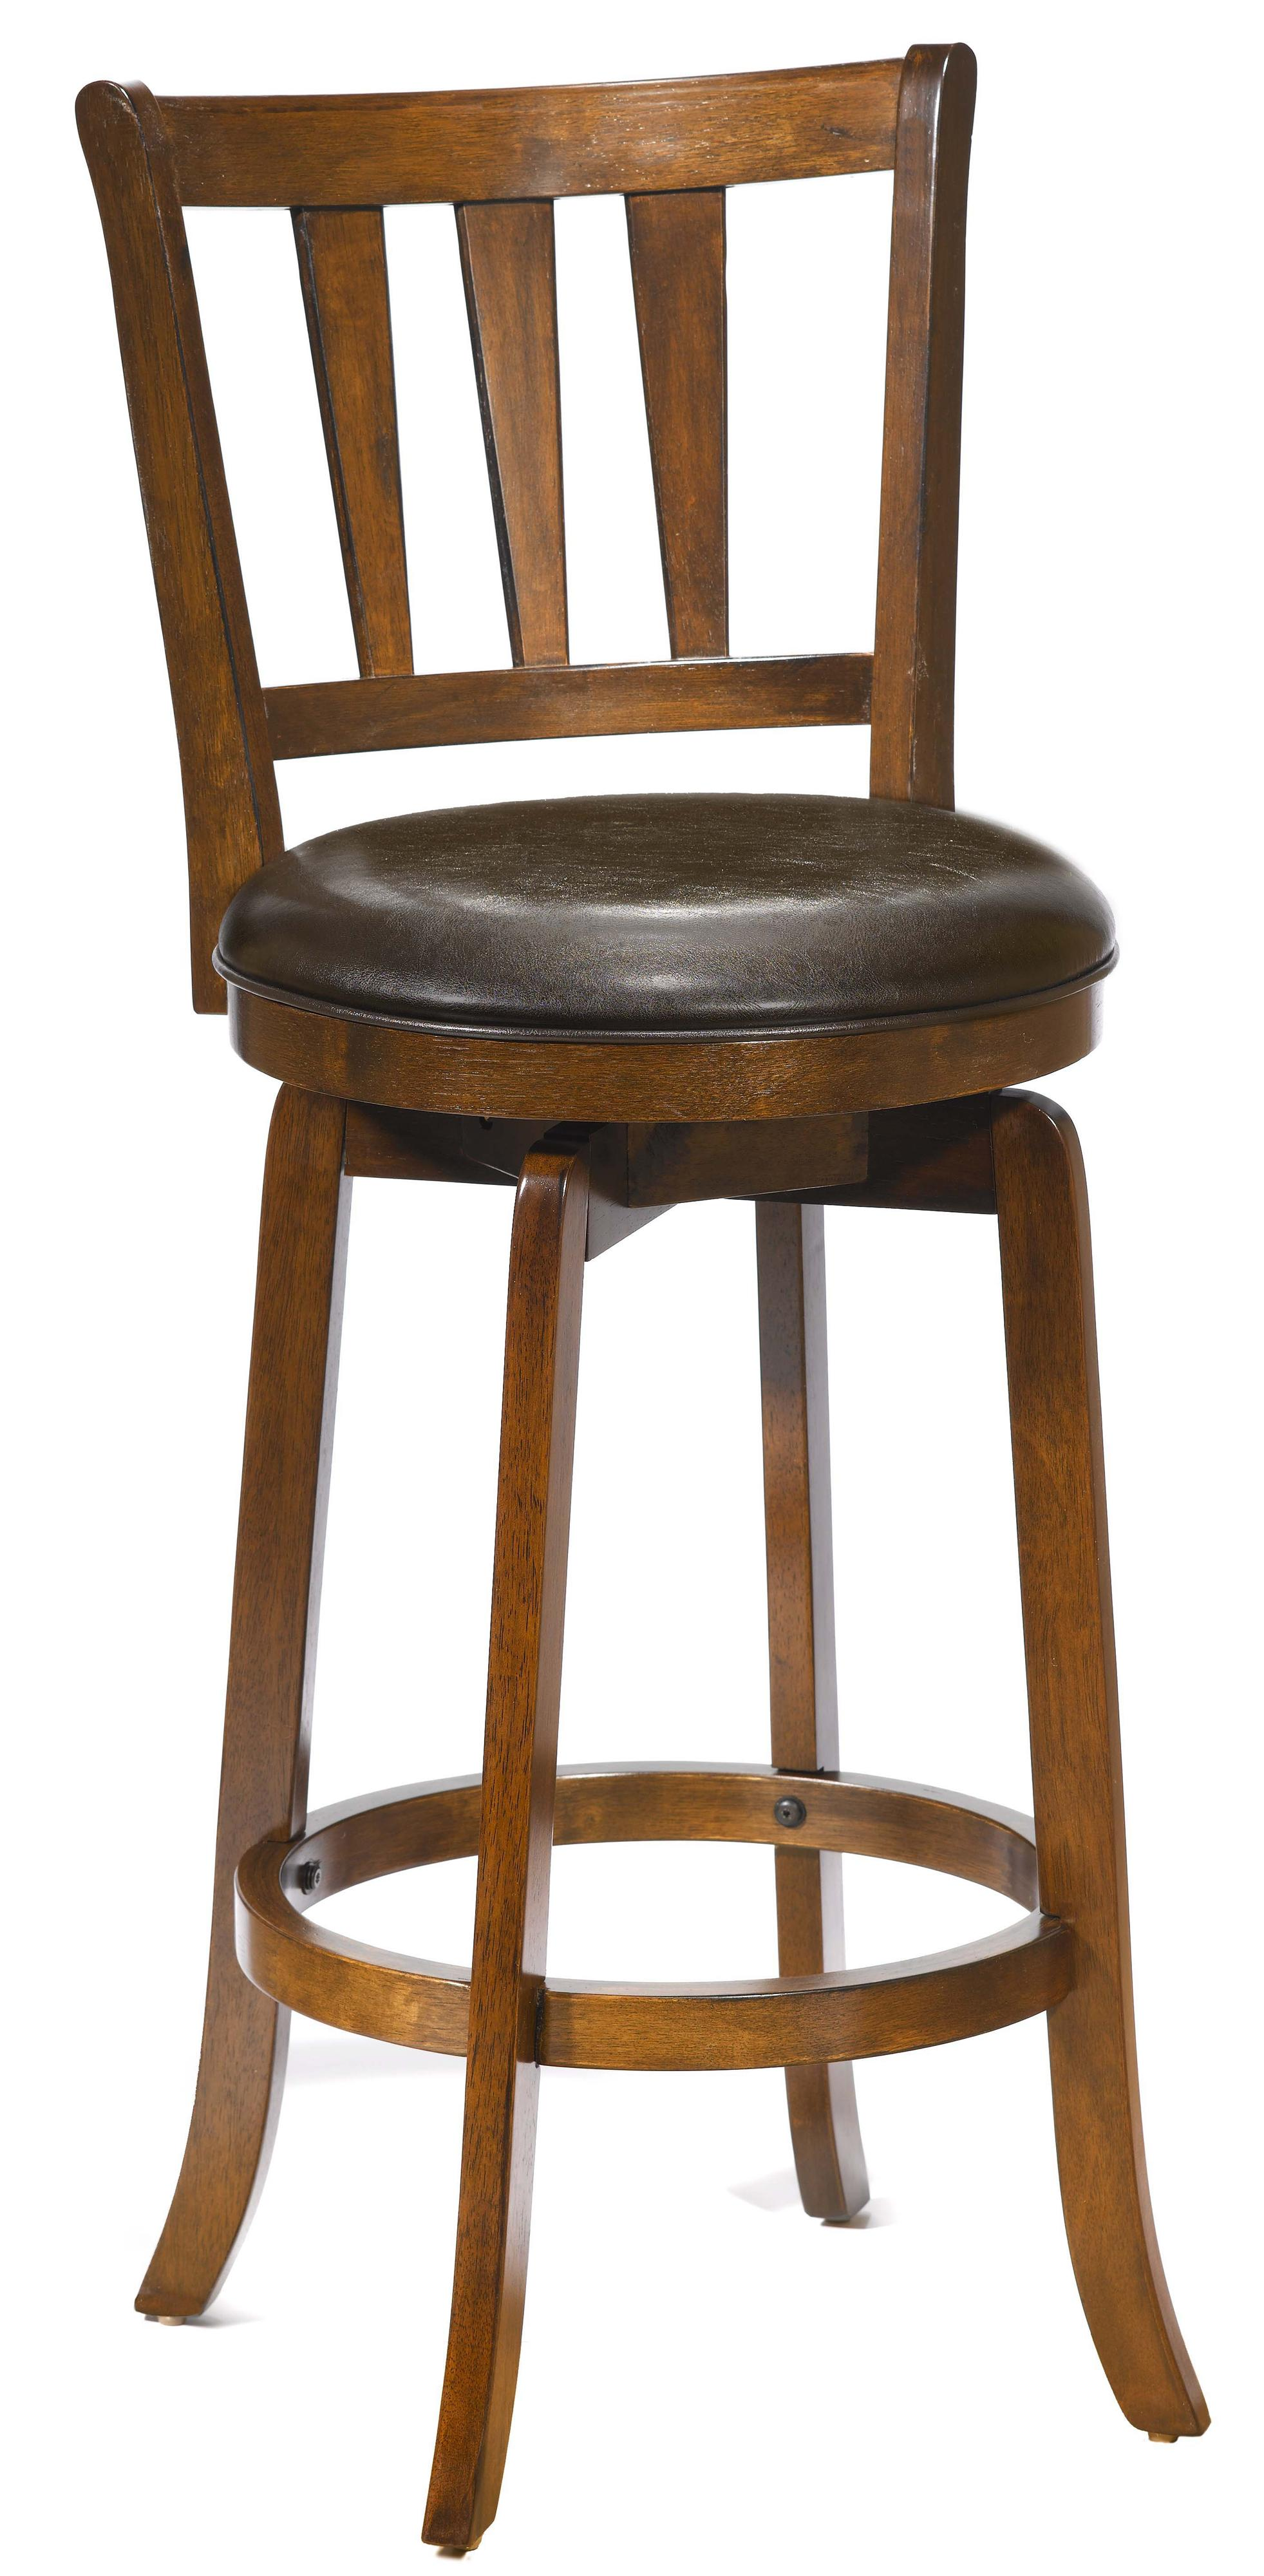 26 Counter Height Presque Isle Swivel Bar Stool By Hillsdale Wolf And Gardiner Wolf Furniture